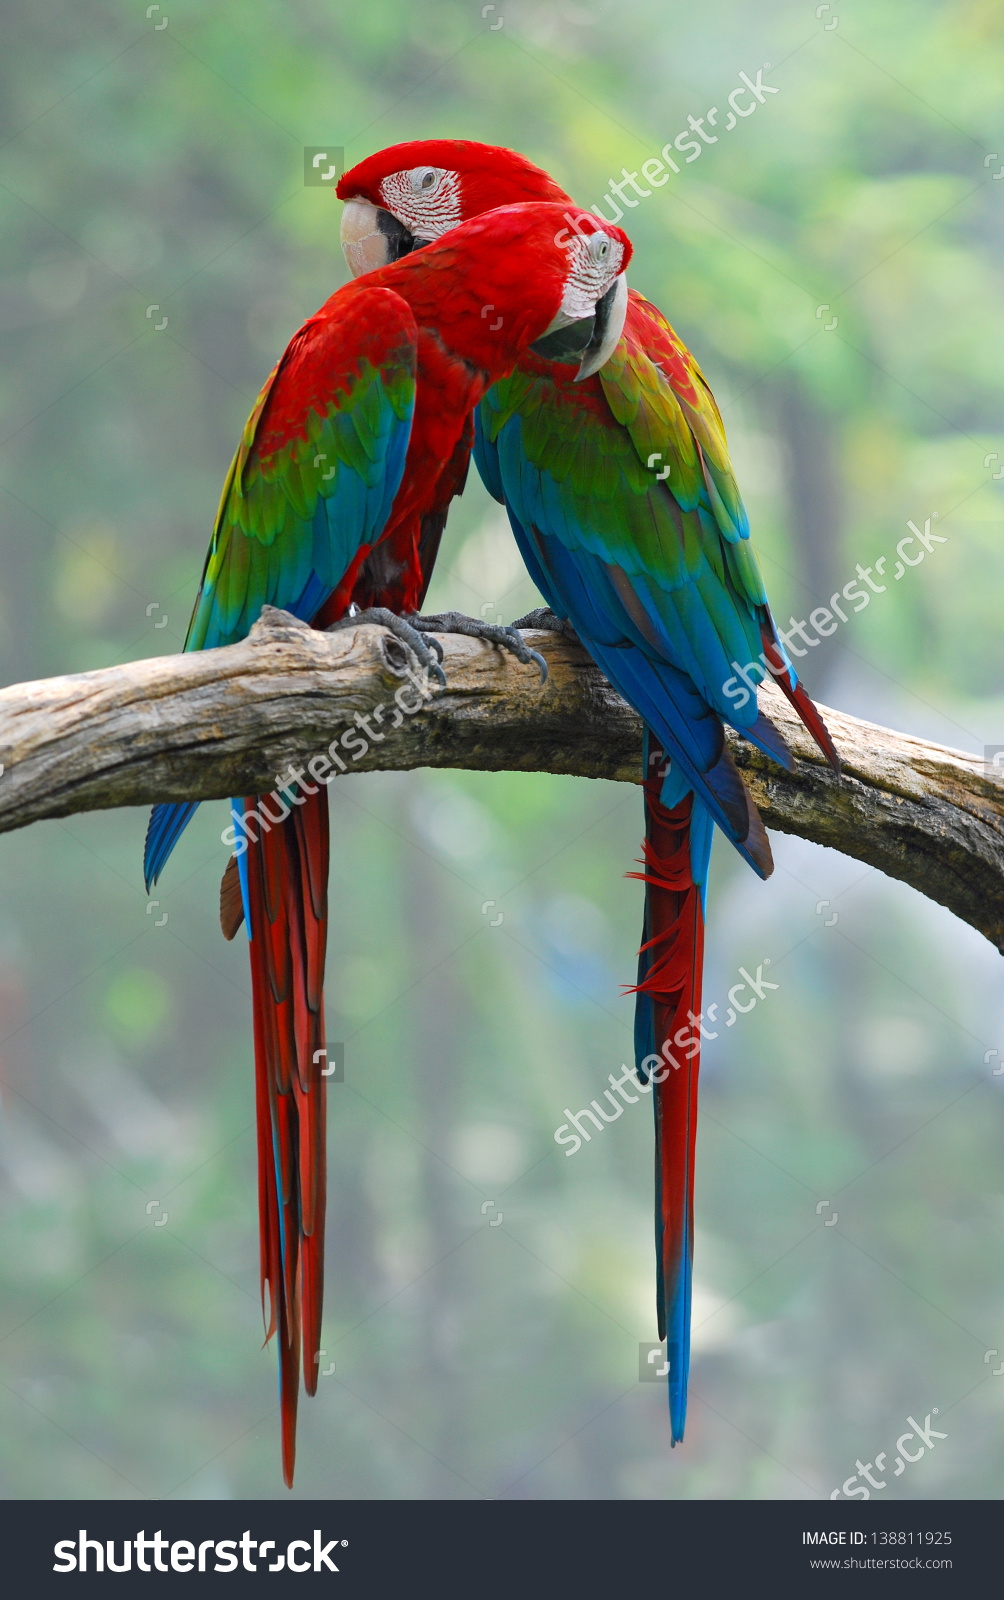 Red-and-green Macaw clipart #13, Download drawings